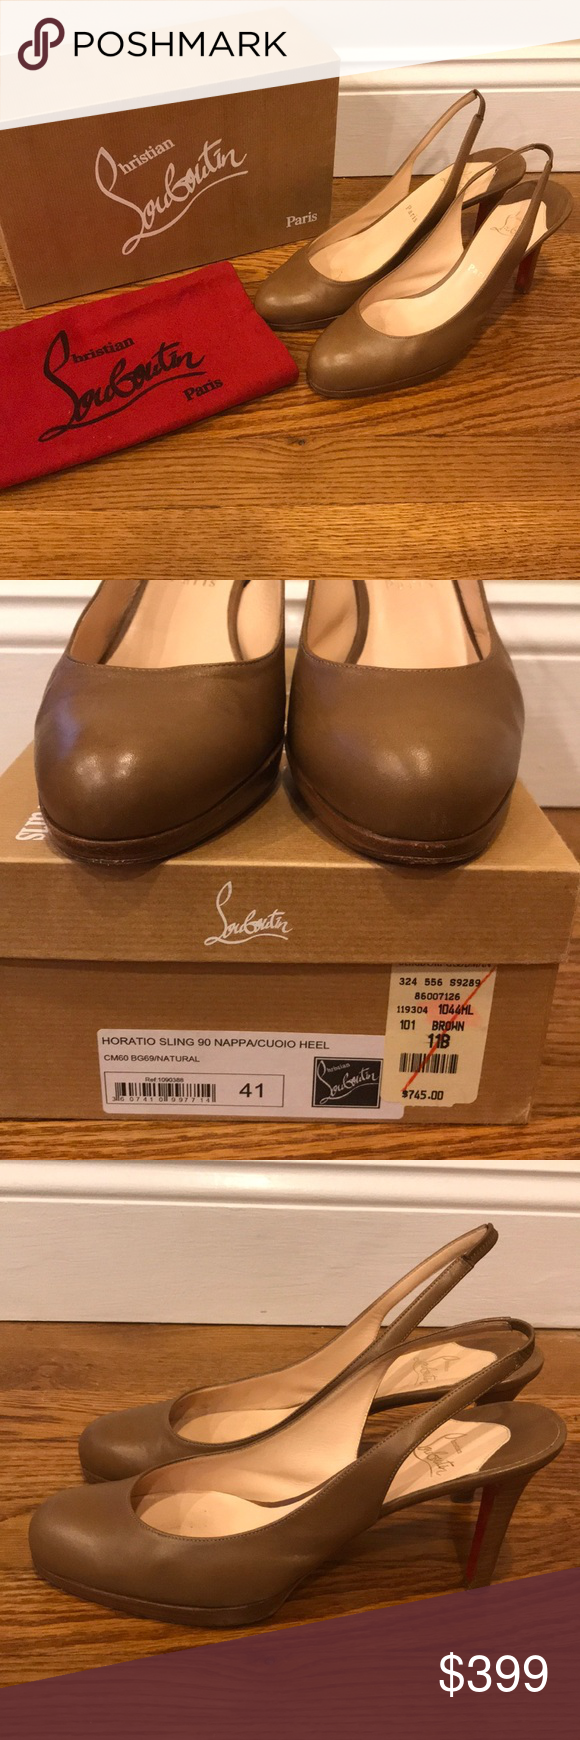 04914bf5ebd Christian Louboutin Horatio Sling 90 Leather Heels All of my items are 100%  authentic.